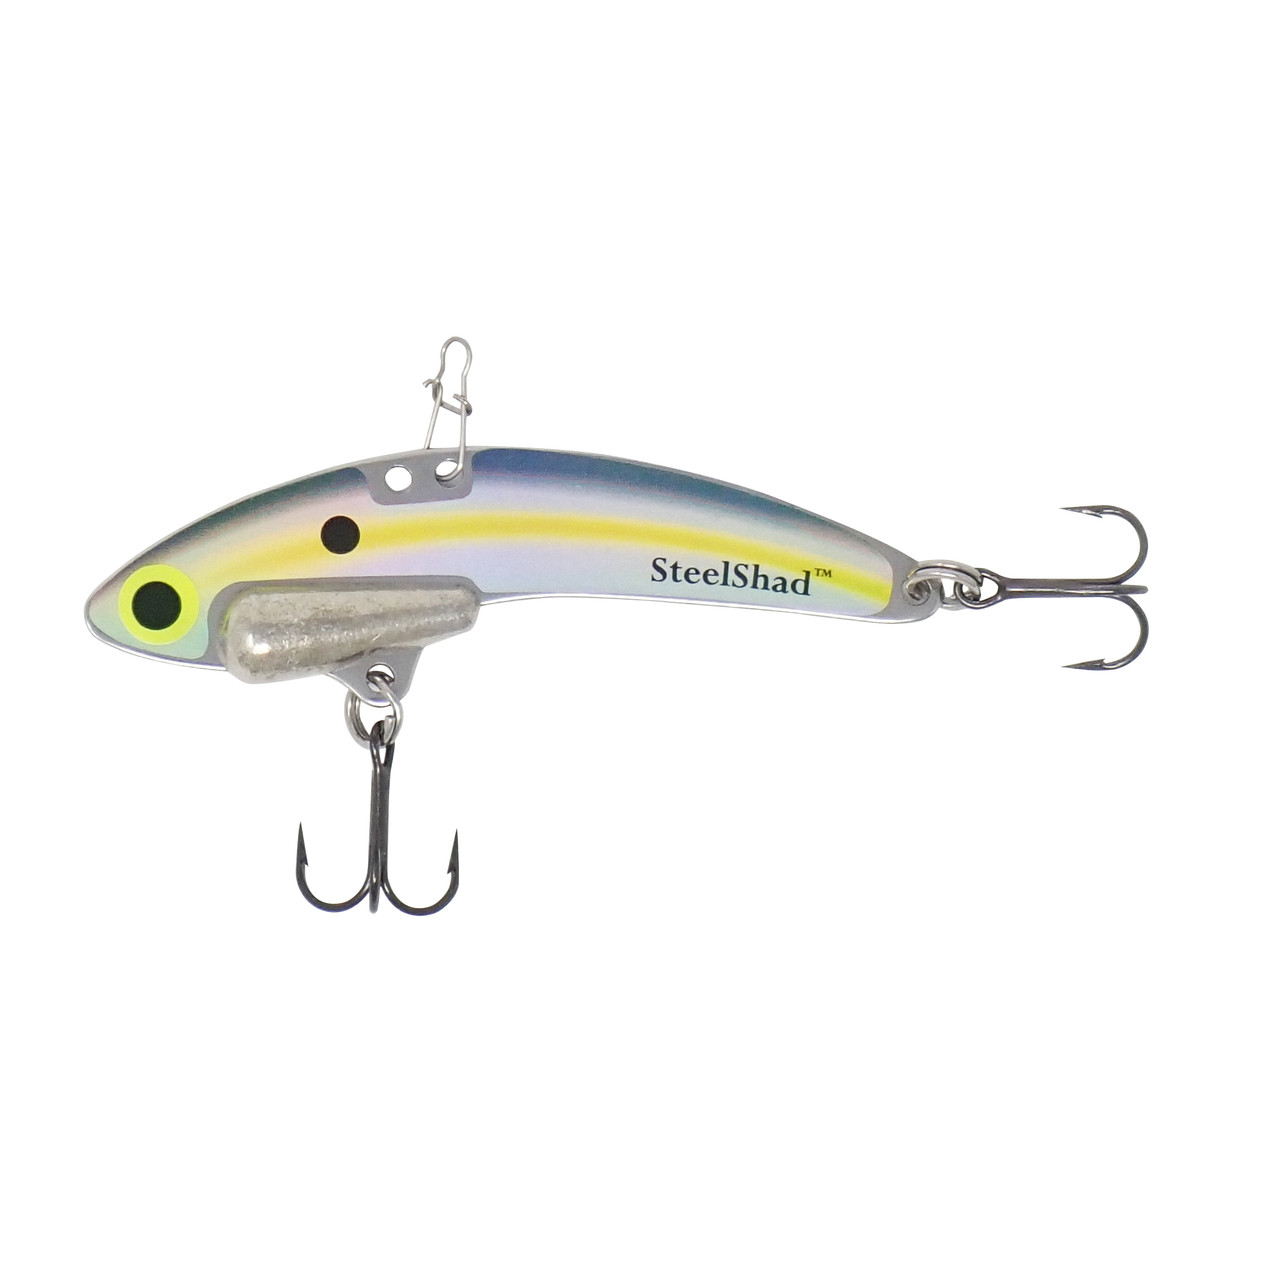 SteelShad Elite Series - 3/8 oz. - Sexy Shad - Tin Weight, Line Clip, #8 Black Nickle Hooks